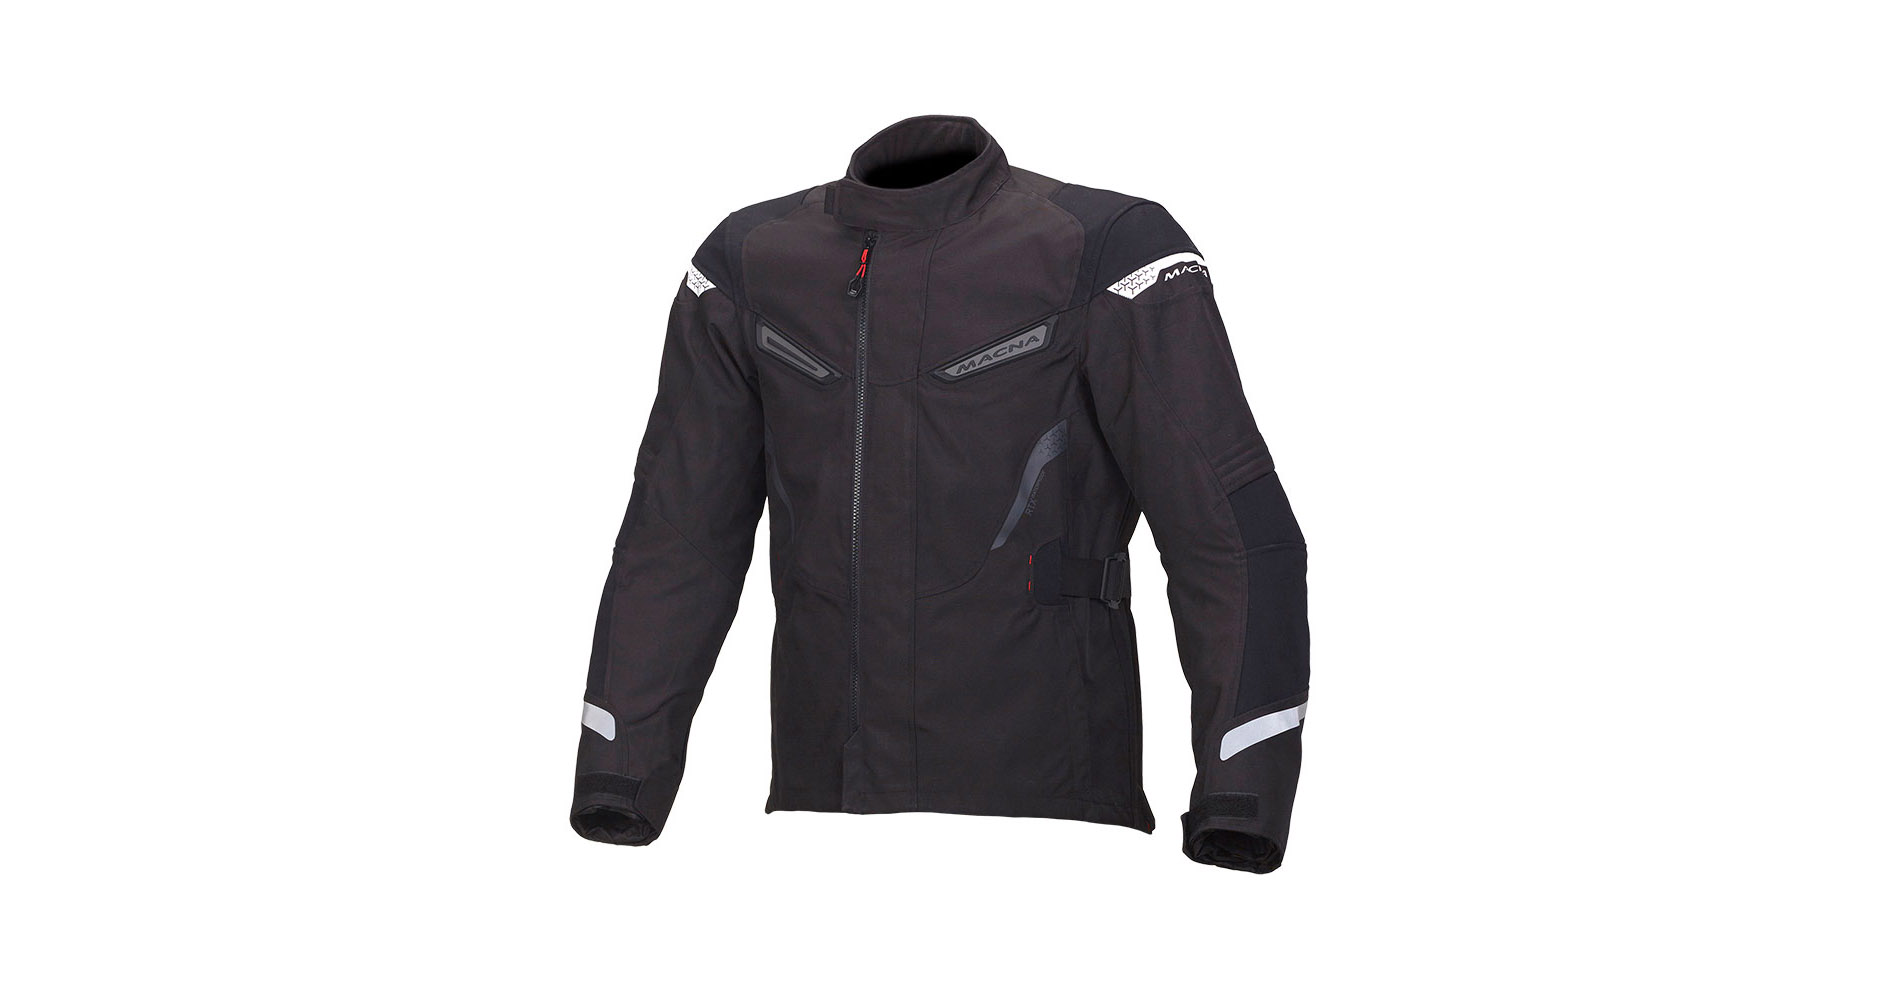 NEW PRODUCT: Macna Myth Jacket